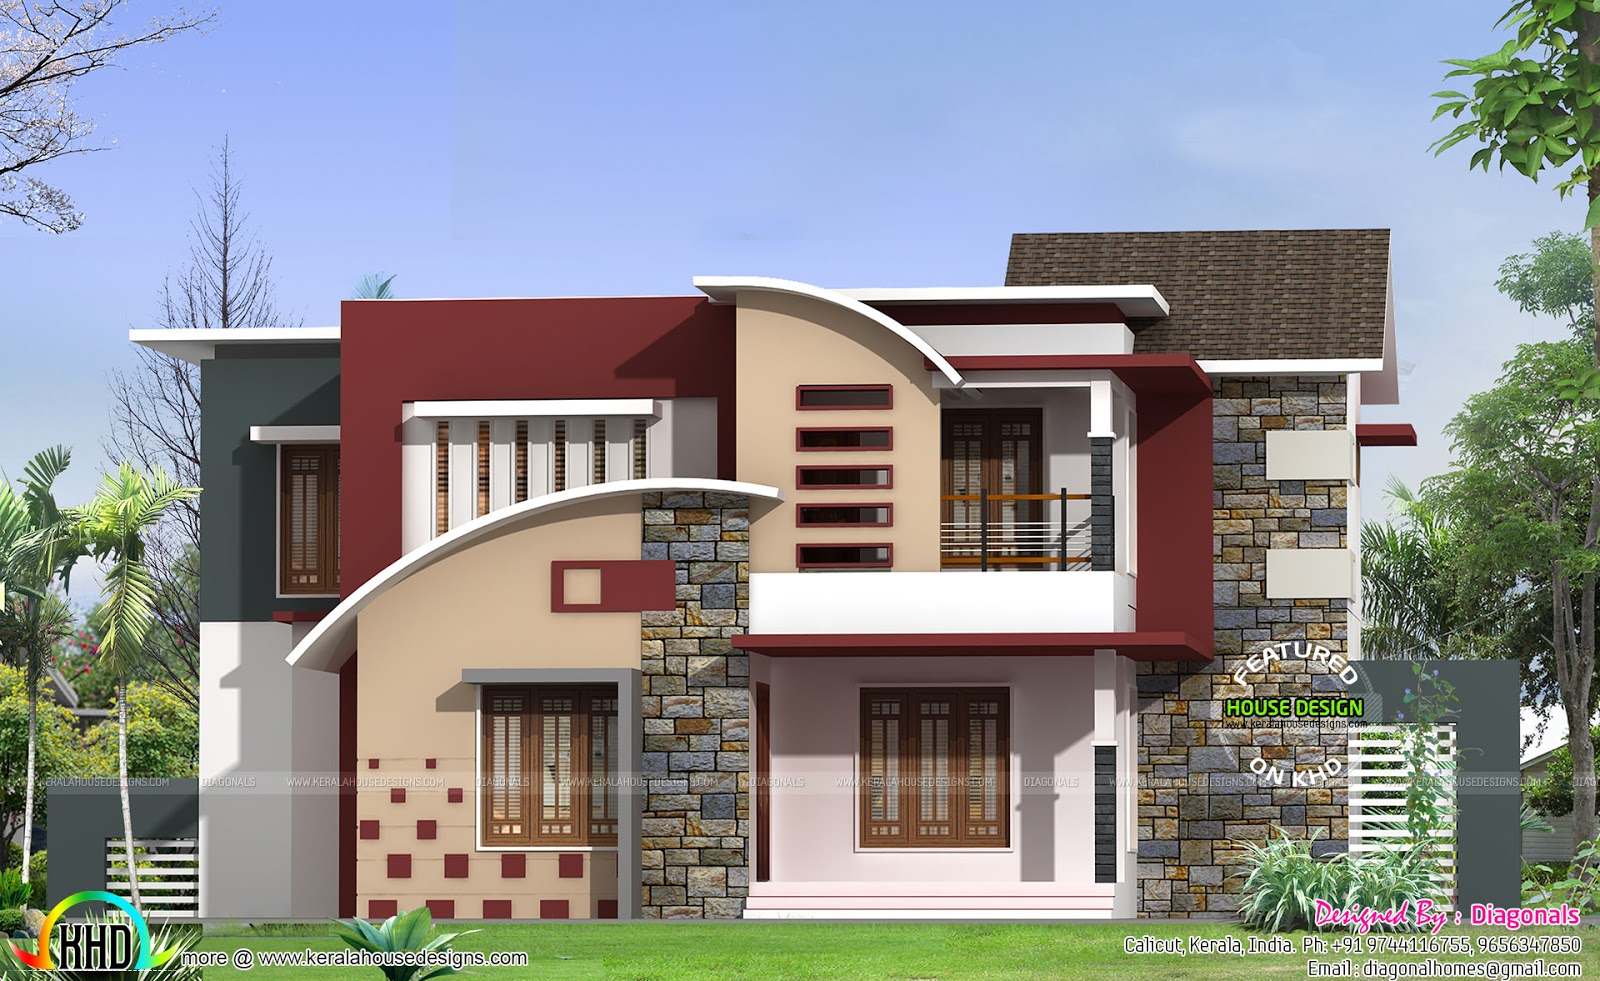 square feet 4 bedroom modern home kerala home design and floor plans